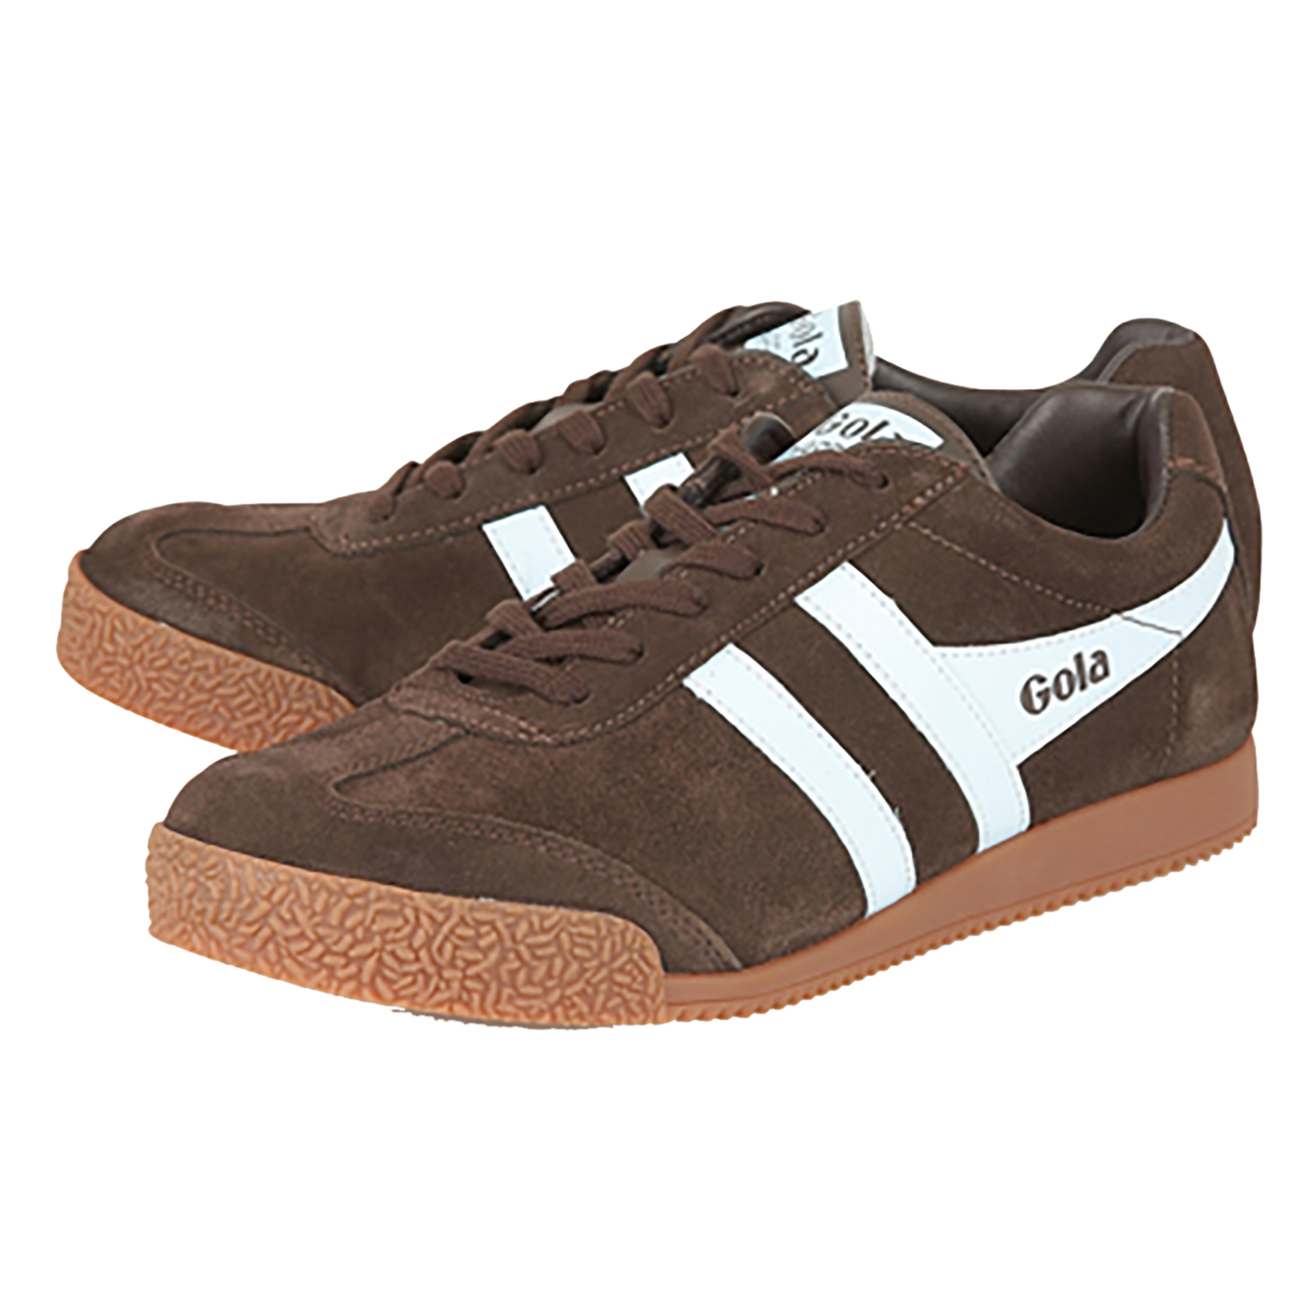 Details Gola Top Trainer 7 Suede Uk About Running 12 Gym Mens Casual Fashion Harrier Sport Low 5Aj43RL